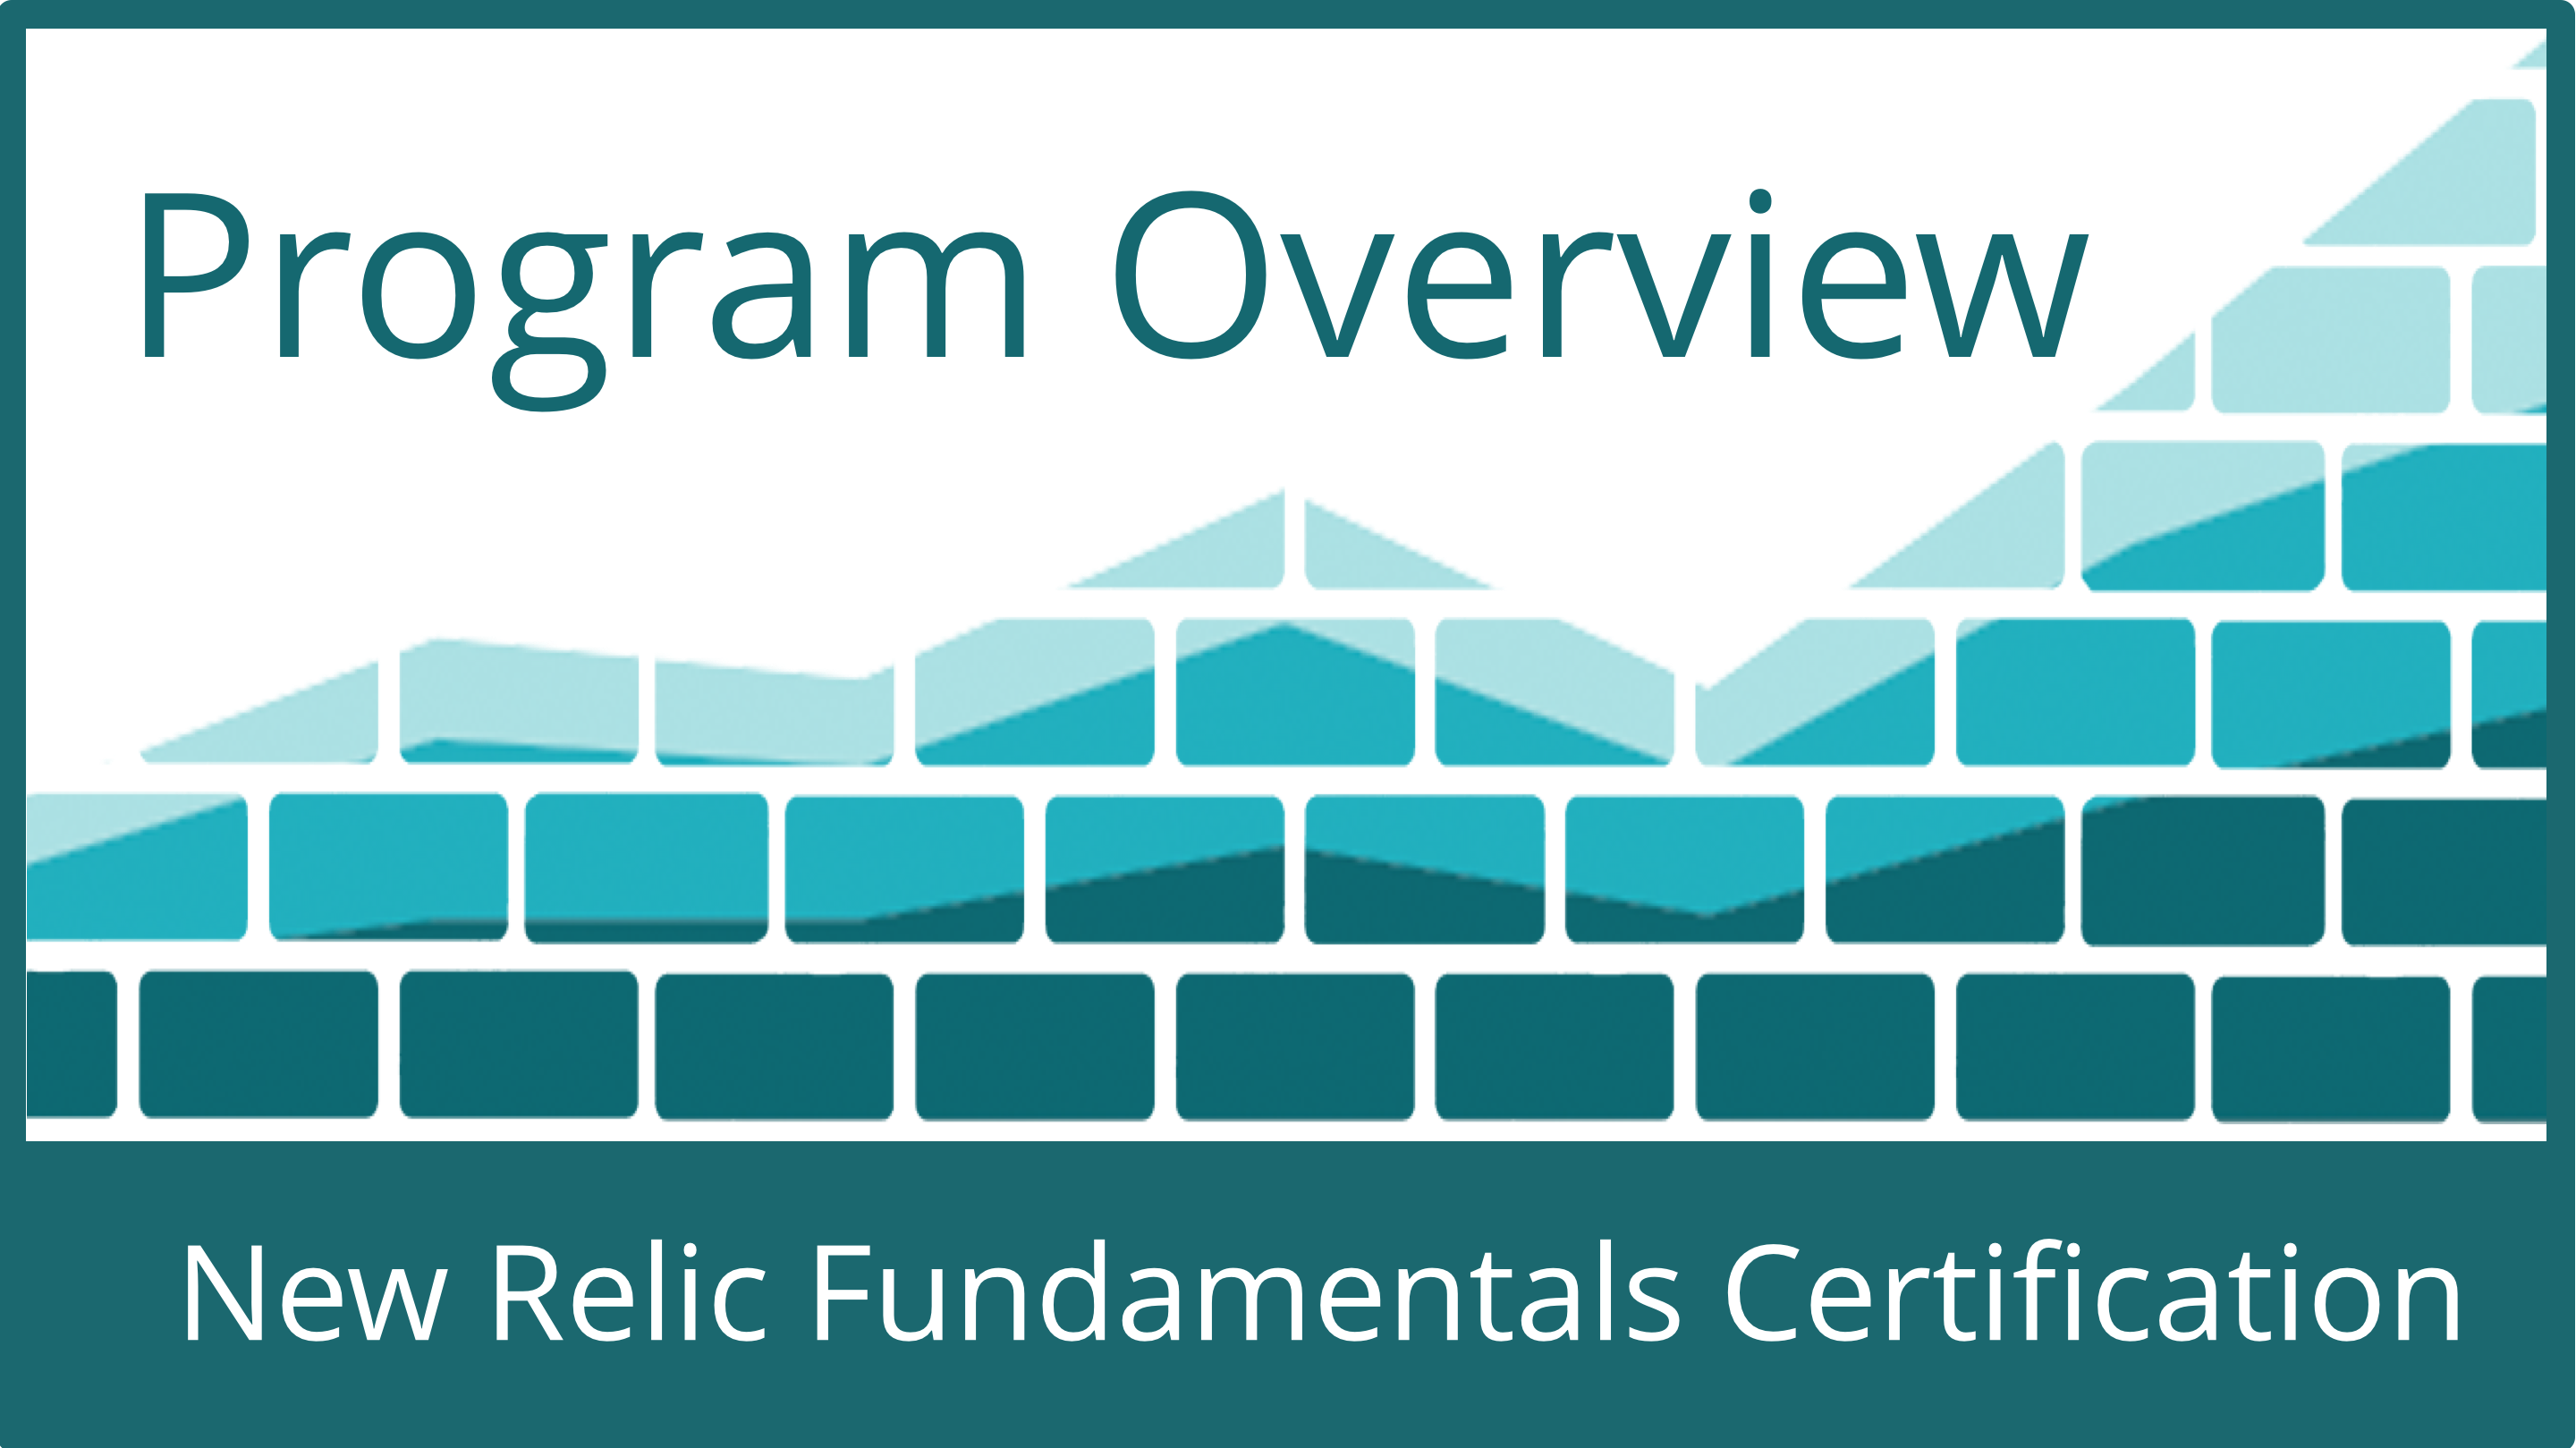 New Relic Fundamentals Certification Program Overview